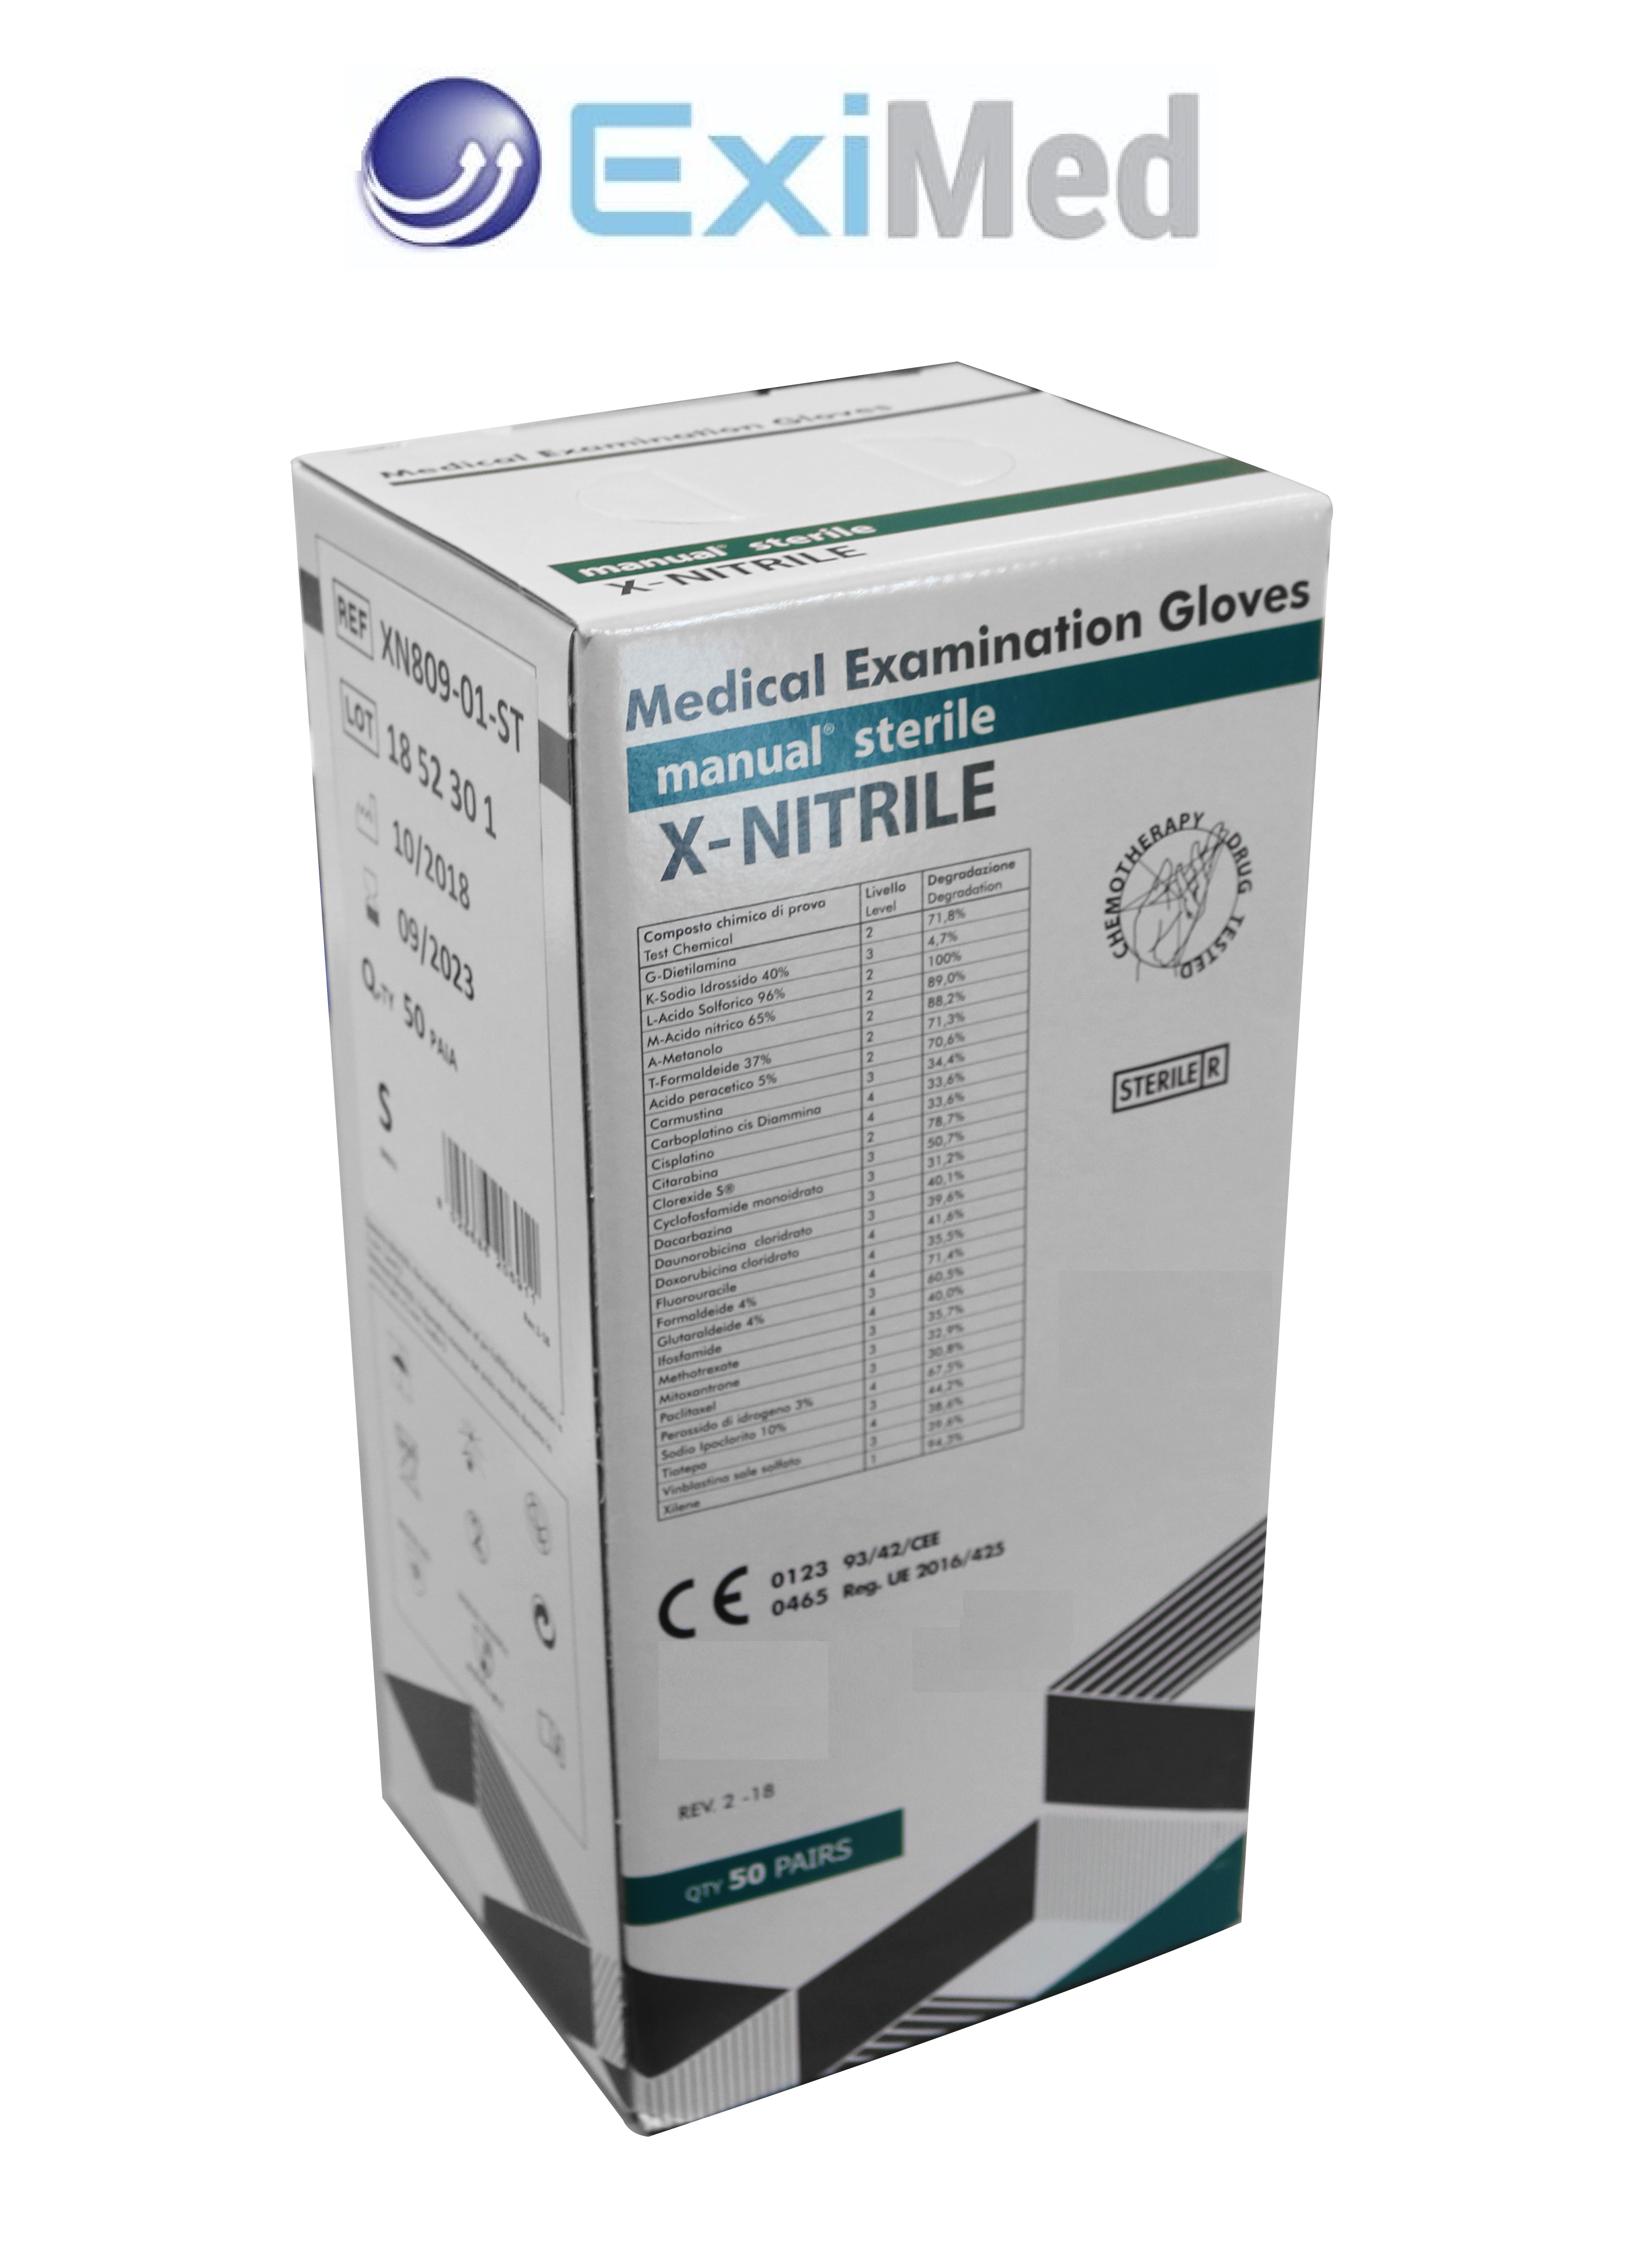 Chemo Examination Gloves - MANUAL X-NITRILE - Sterile Extra Protection Long Cuff